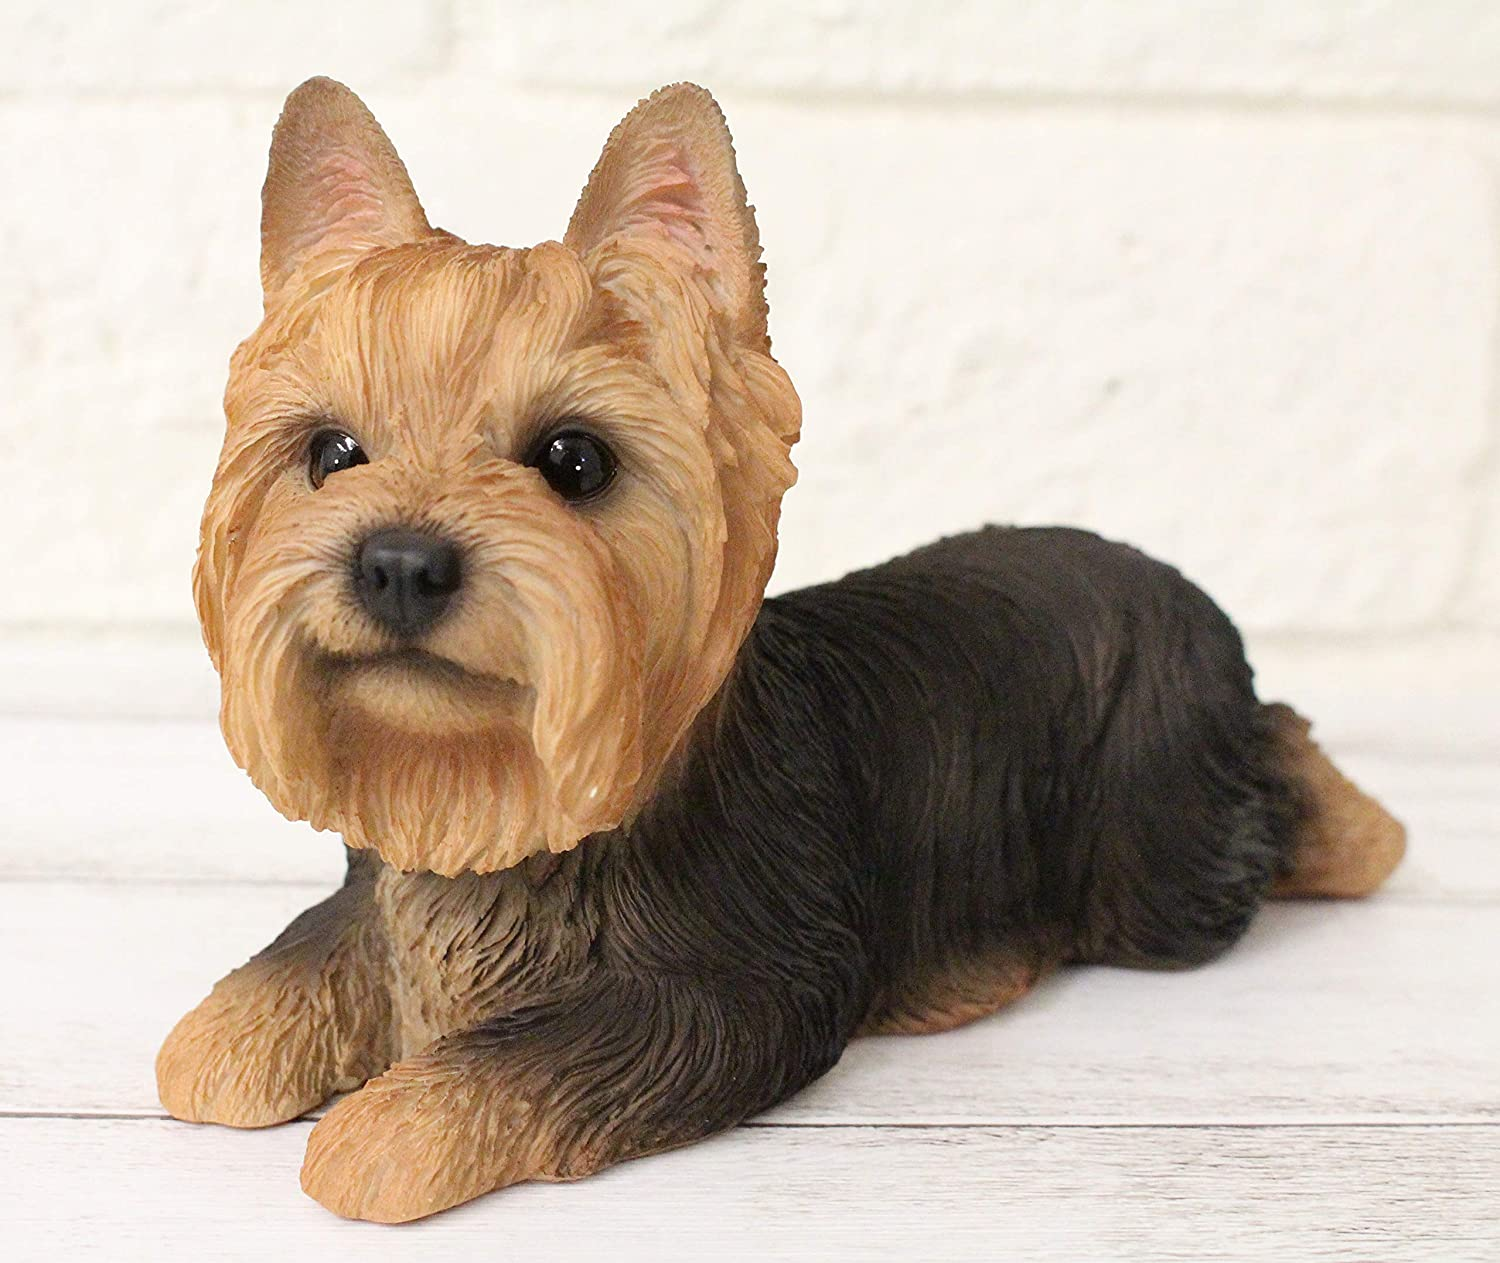 Yorkie Yorkshire Terrier Dog Figurine Statue Lifelike Animal Home Garden Decor Resin Collectible Outdoor Sculpture Lawn Patio Accents Yard